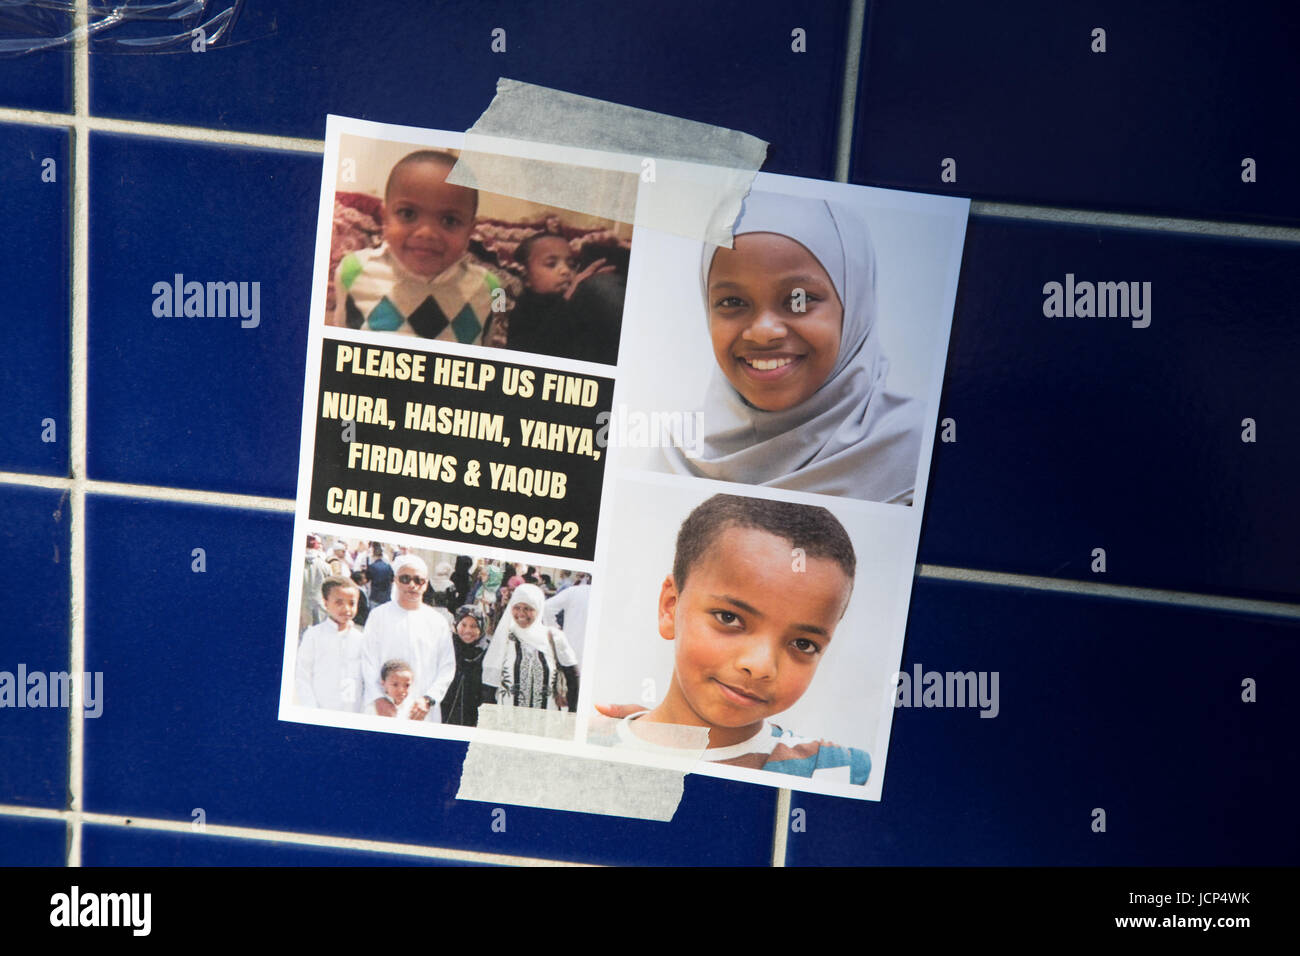 Kensington, London, UK. 17th June, 2017. Mutiple posters of missing residents. Scenes around Latimer road area where - Stock Image